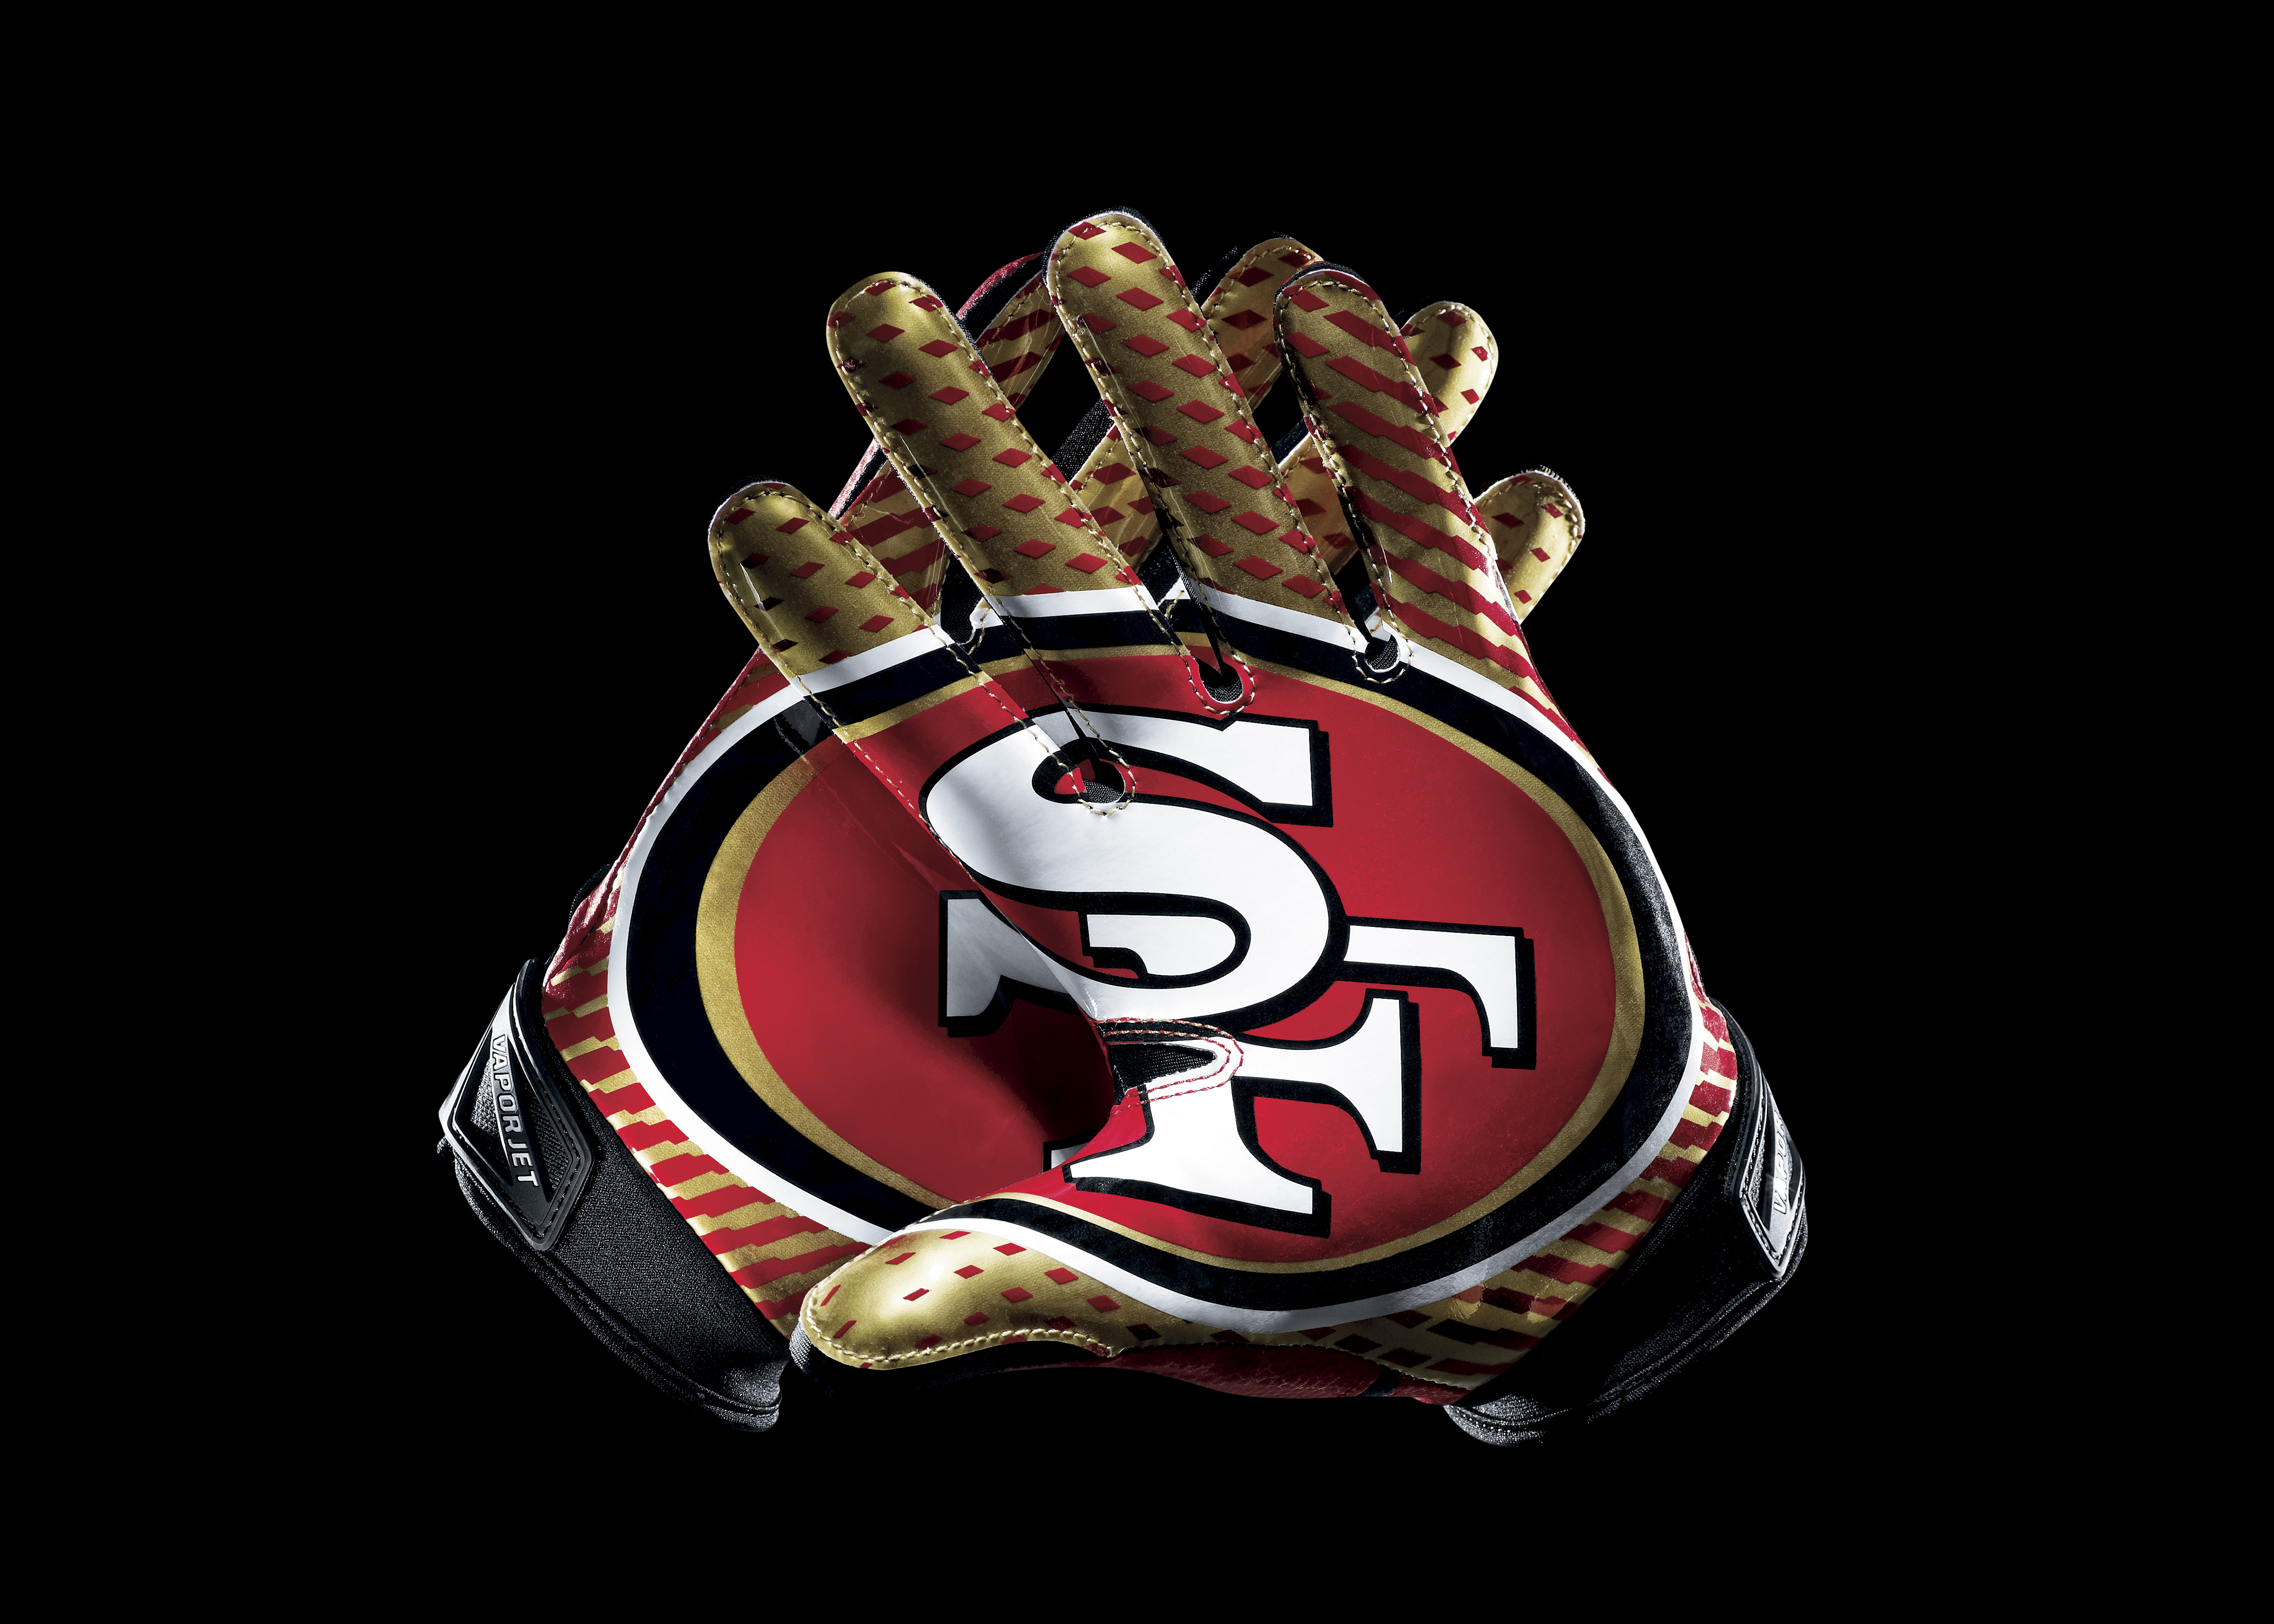 49ers nike wallpaper hd